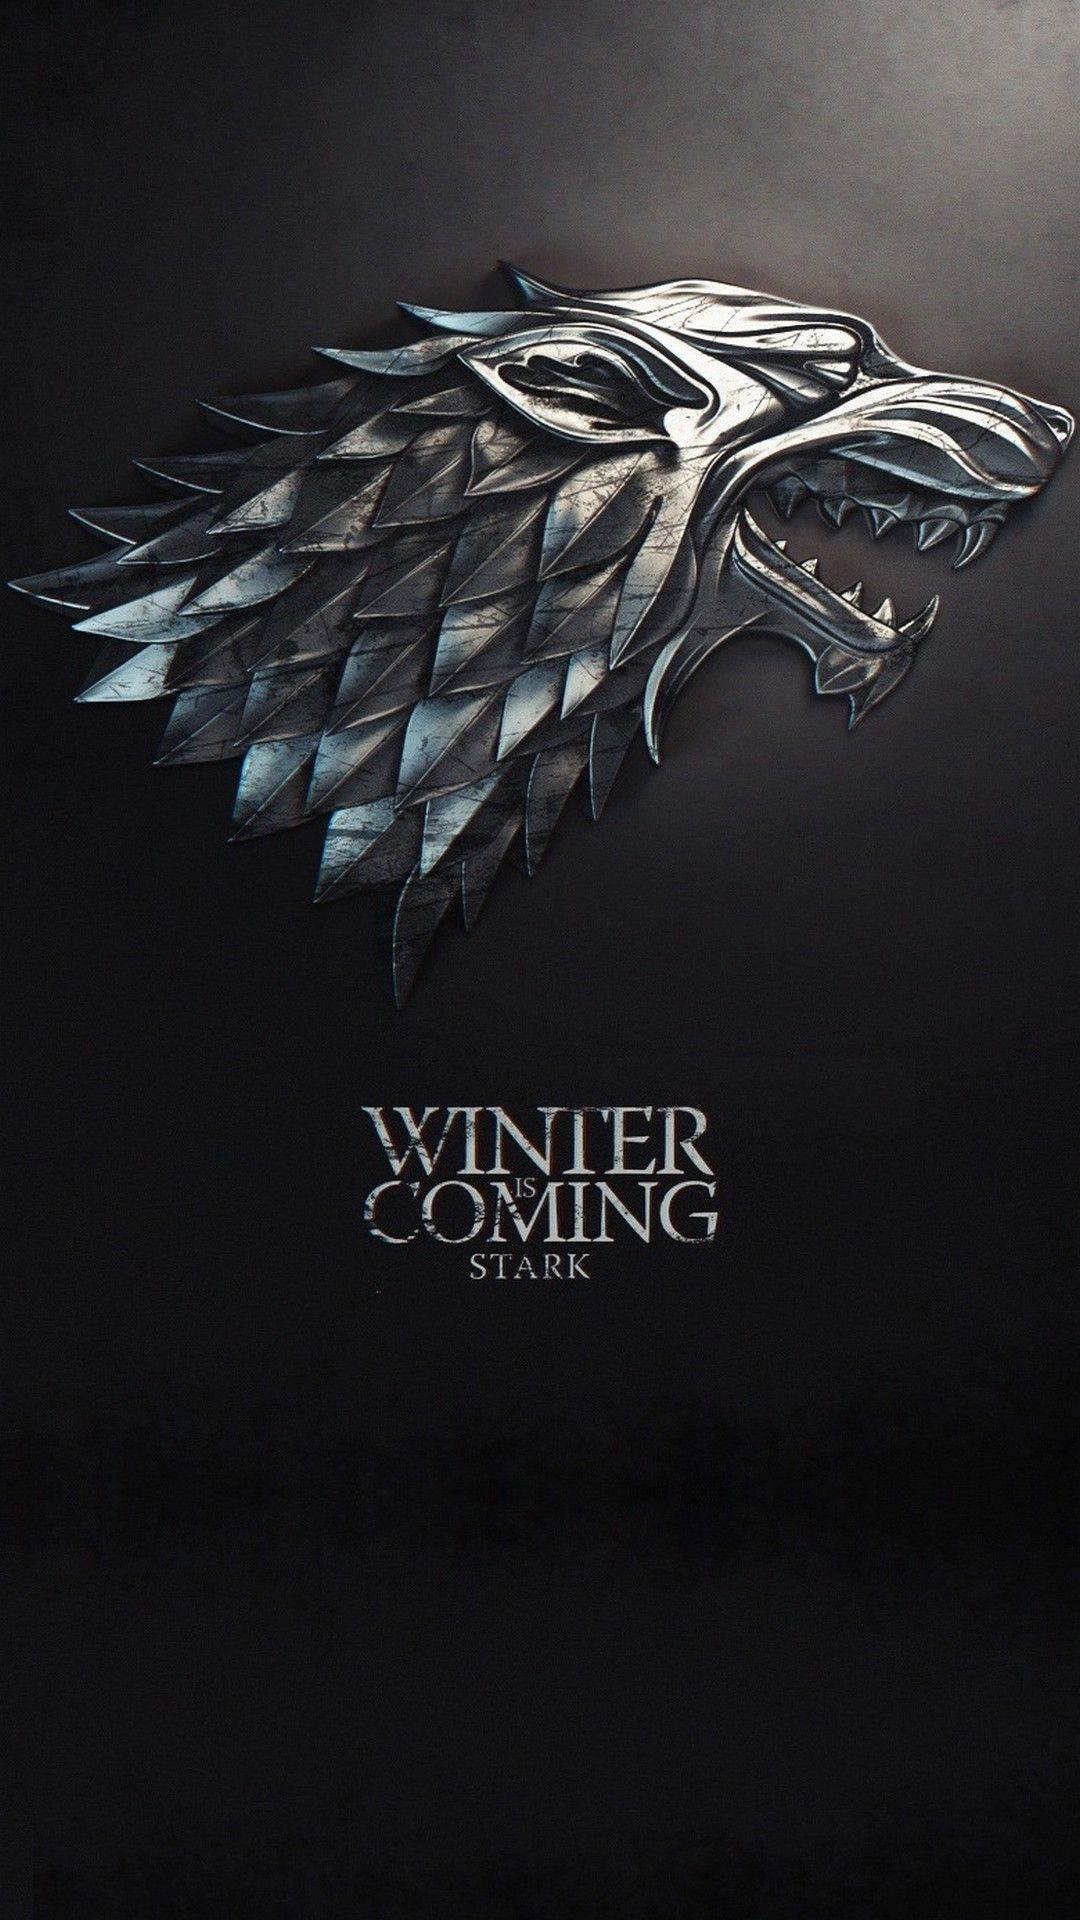 House Stark Game Of Thrones Android Wallpaper Best Android Wallpapers Winter Is Coming Wallpaper Game Of Thrones Game Of Thrones Houses